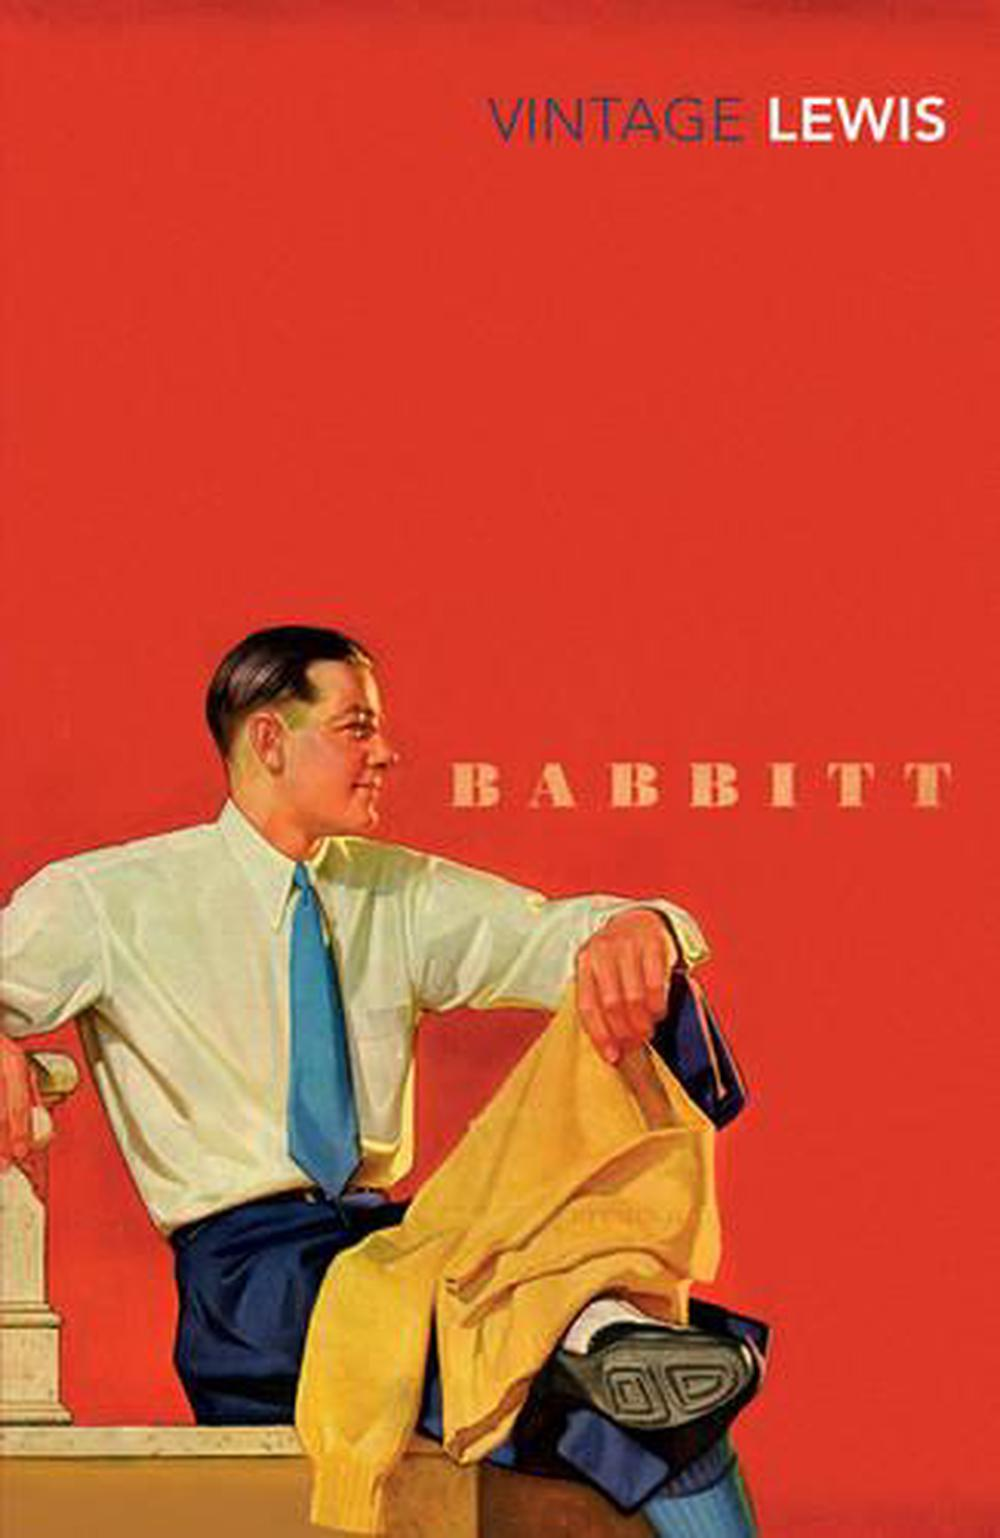 george babbitt of sinclair lewis babbitt Lewis placed his main character, real estate broker george babbitt, in the middle of this frenzy struggling to identify his own political stance, babbitt is caught between his newly adopted liberal views and his colleagues.